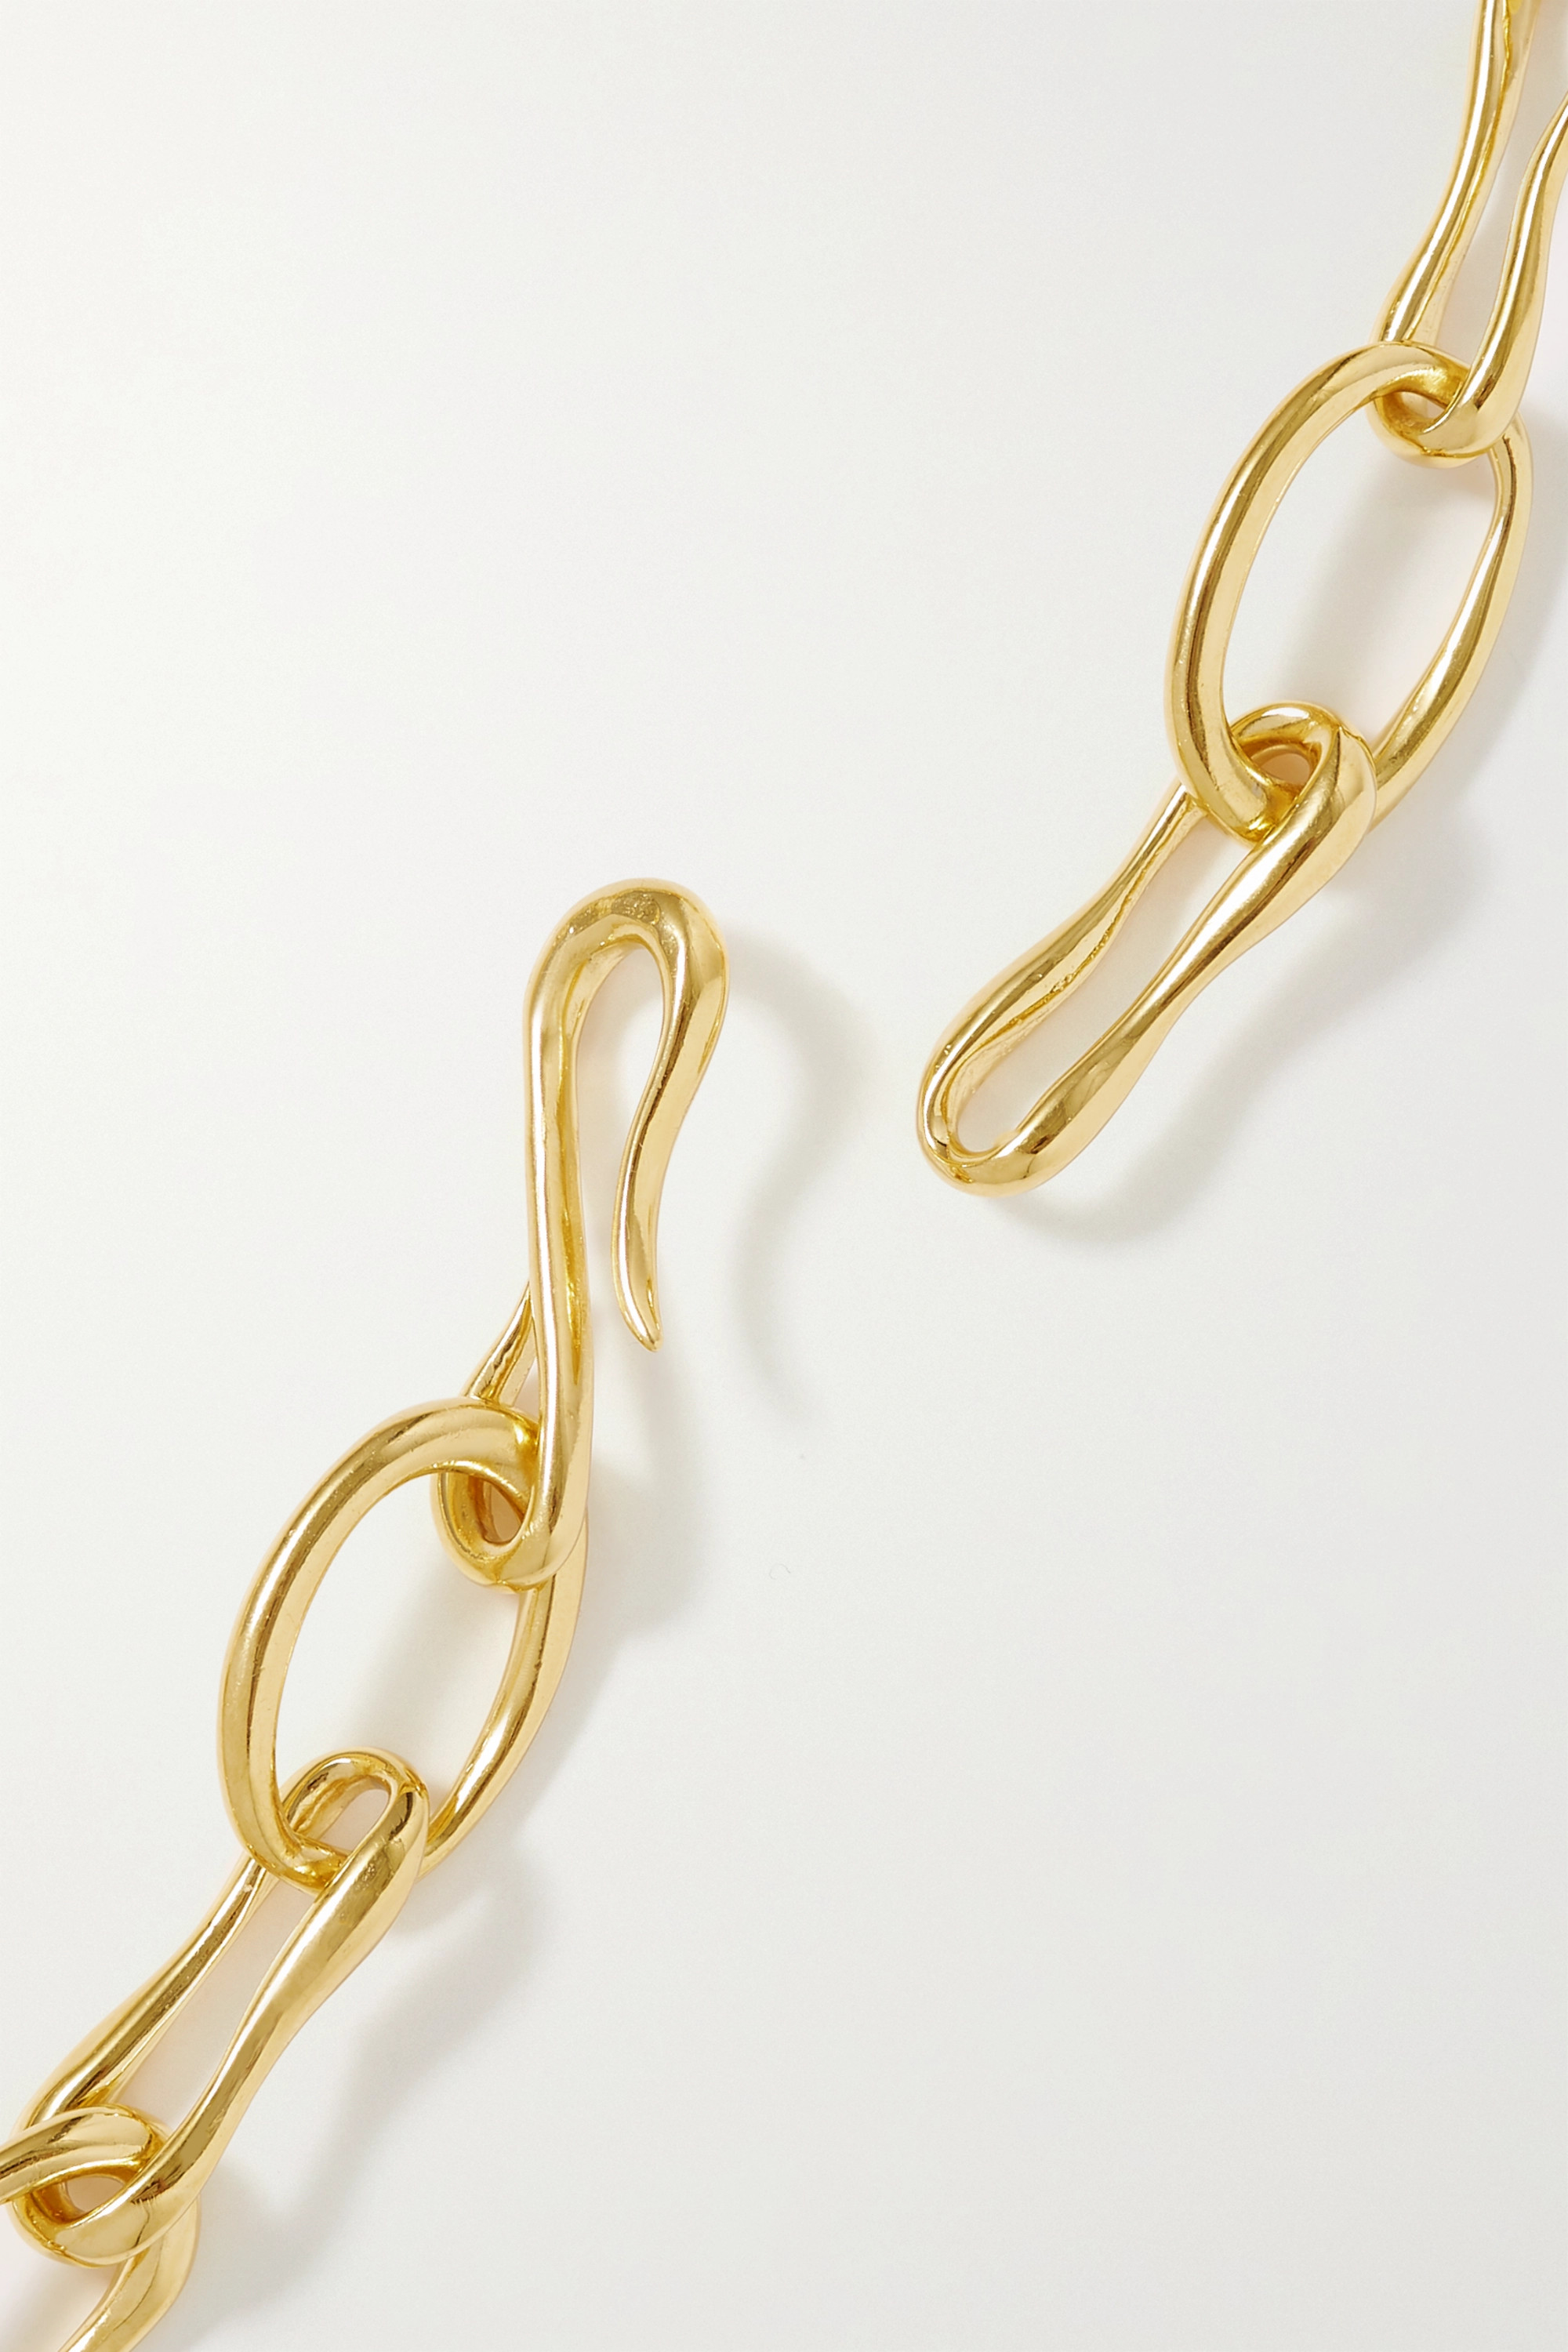 Sophie Buhai + NET SUSTAIN Roman gold vermeil necklace